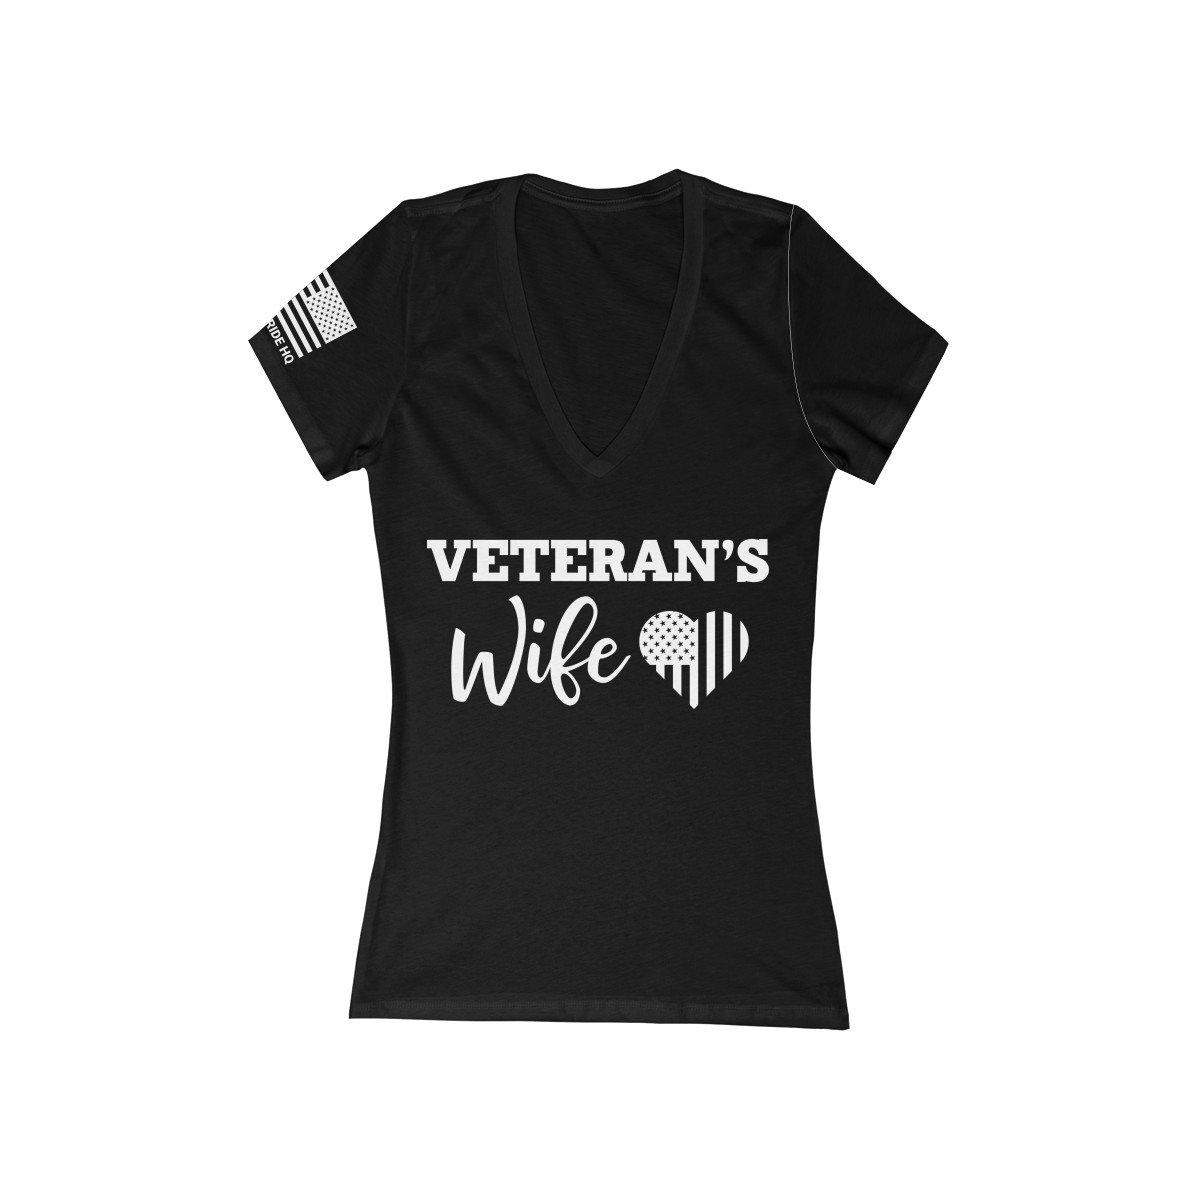 Veteran's Wife Women's V-Neck Tee